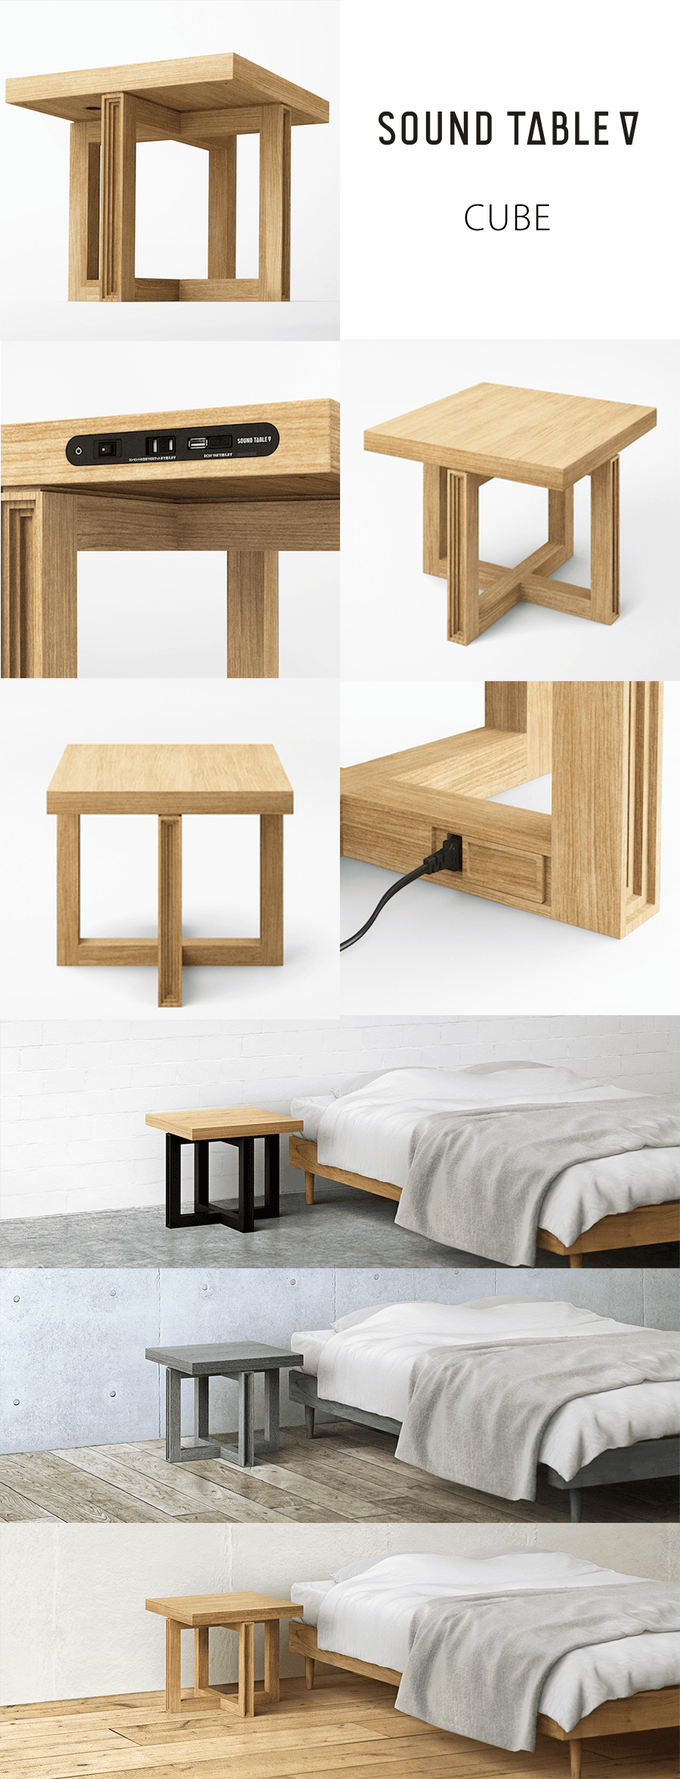 Sound Table: The World's Only Furniture That Plays Music